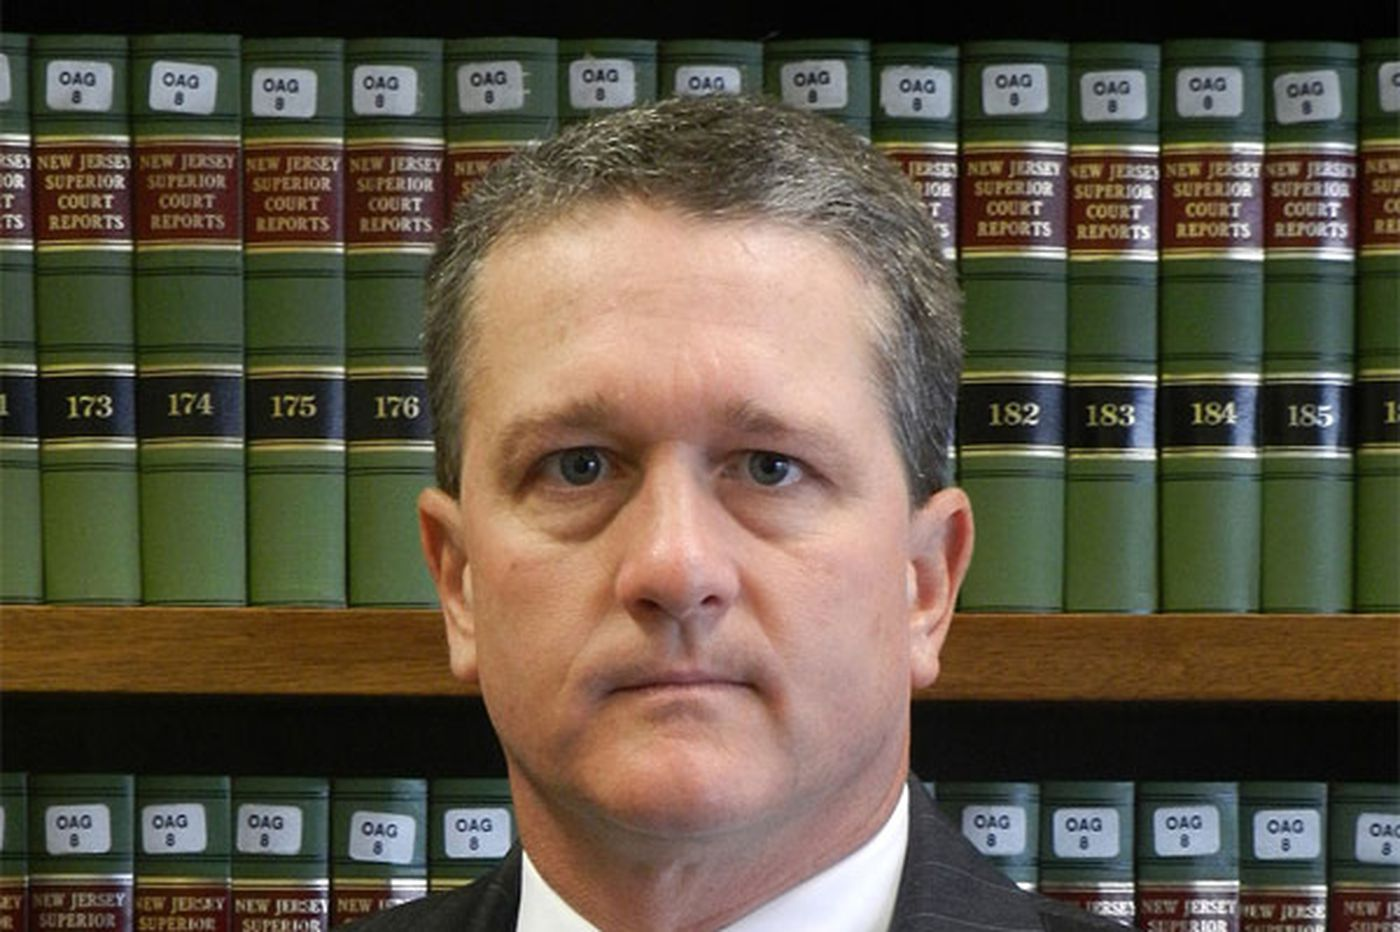 Acting N.J. attorney general is Marlton resident